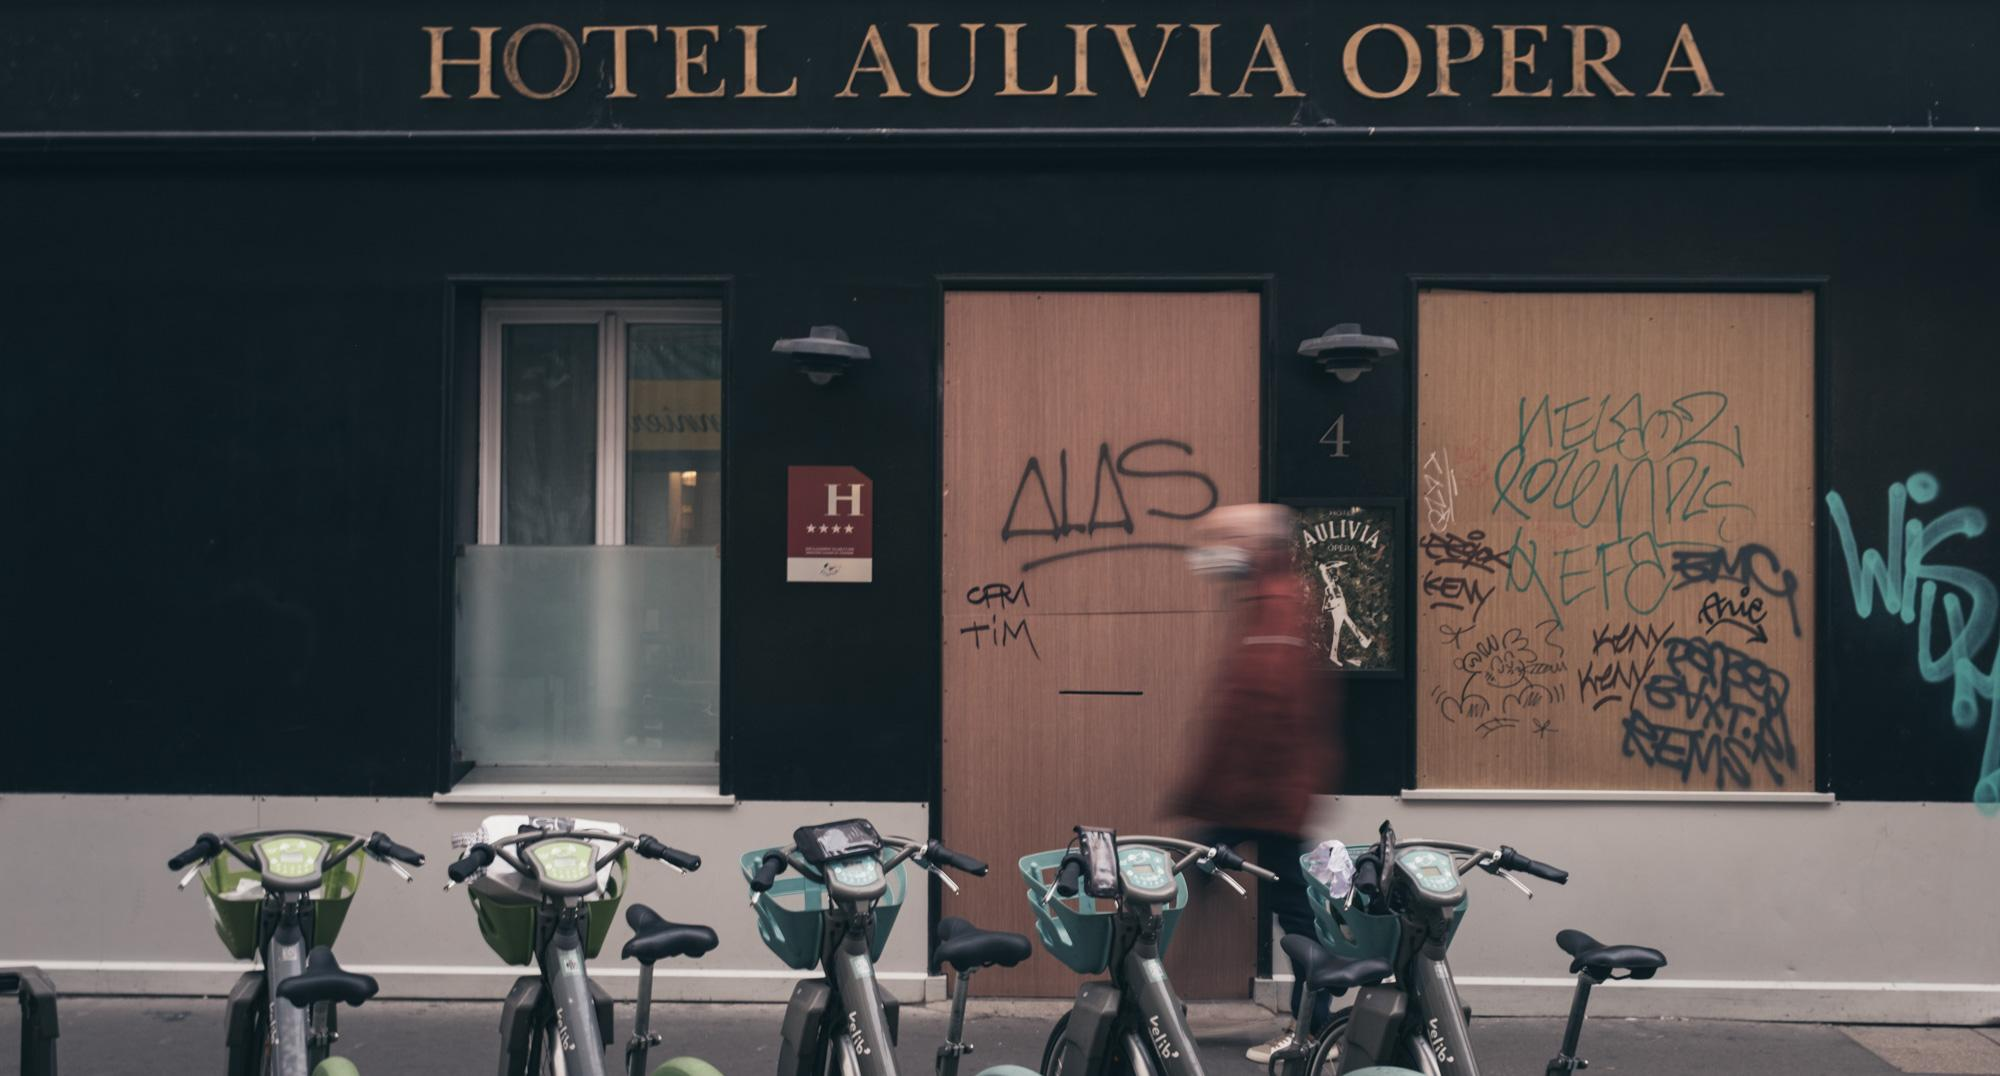 Hotel Aulivia Opera - Petites Ecuries. Covid side effects in Paris.